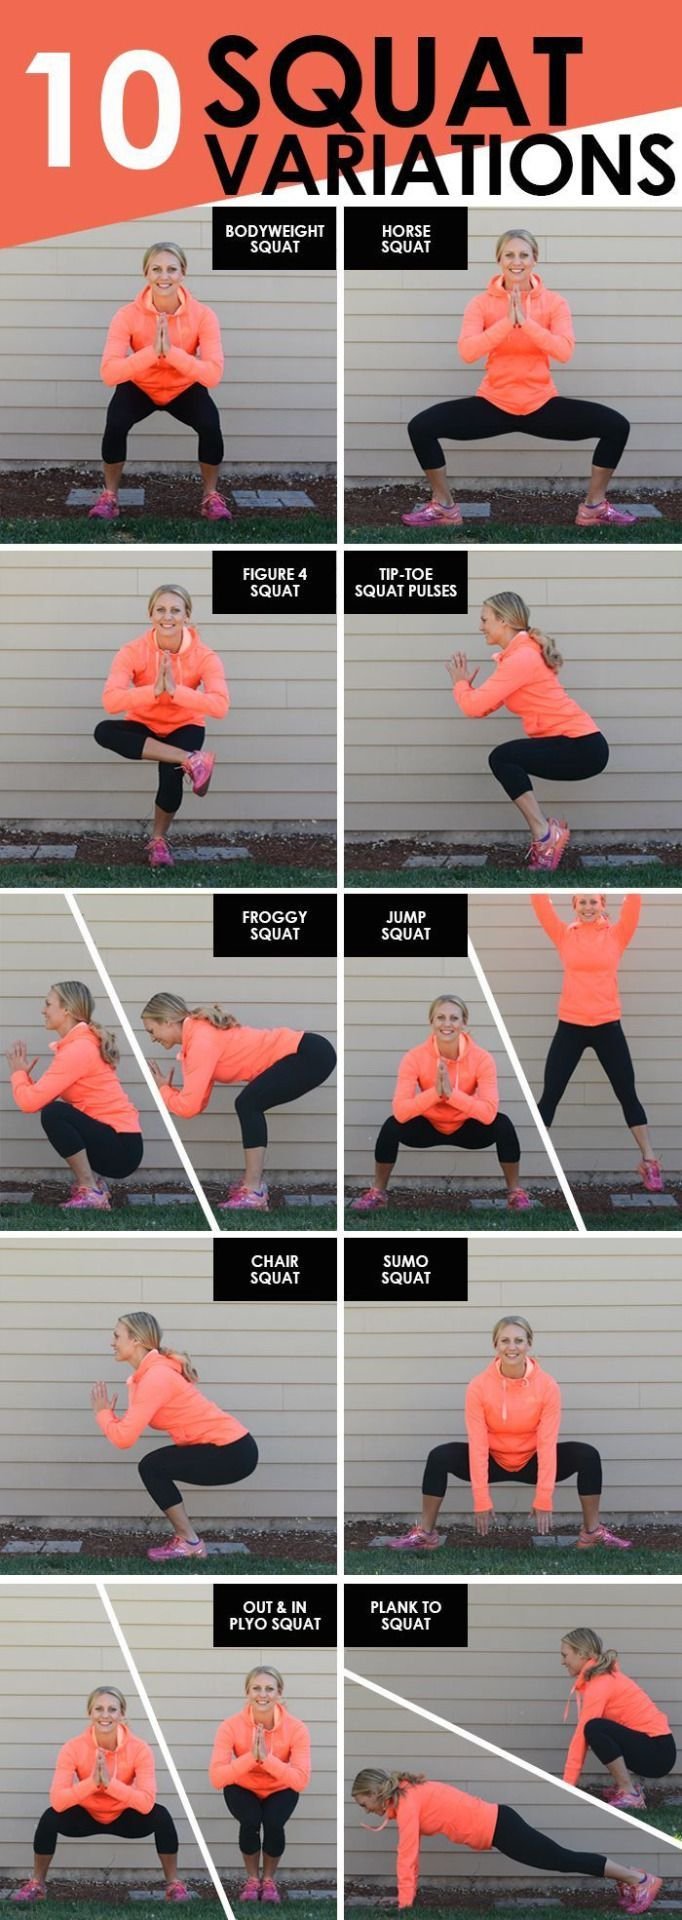 10 Squat Variations     10 Squat Variations  https://www.pinterest.com/pin/133489576432686306/